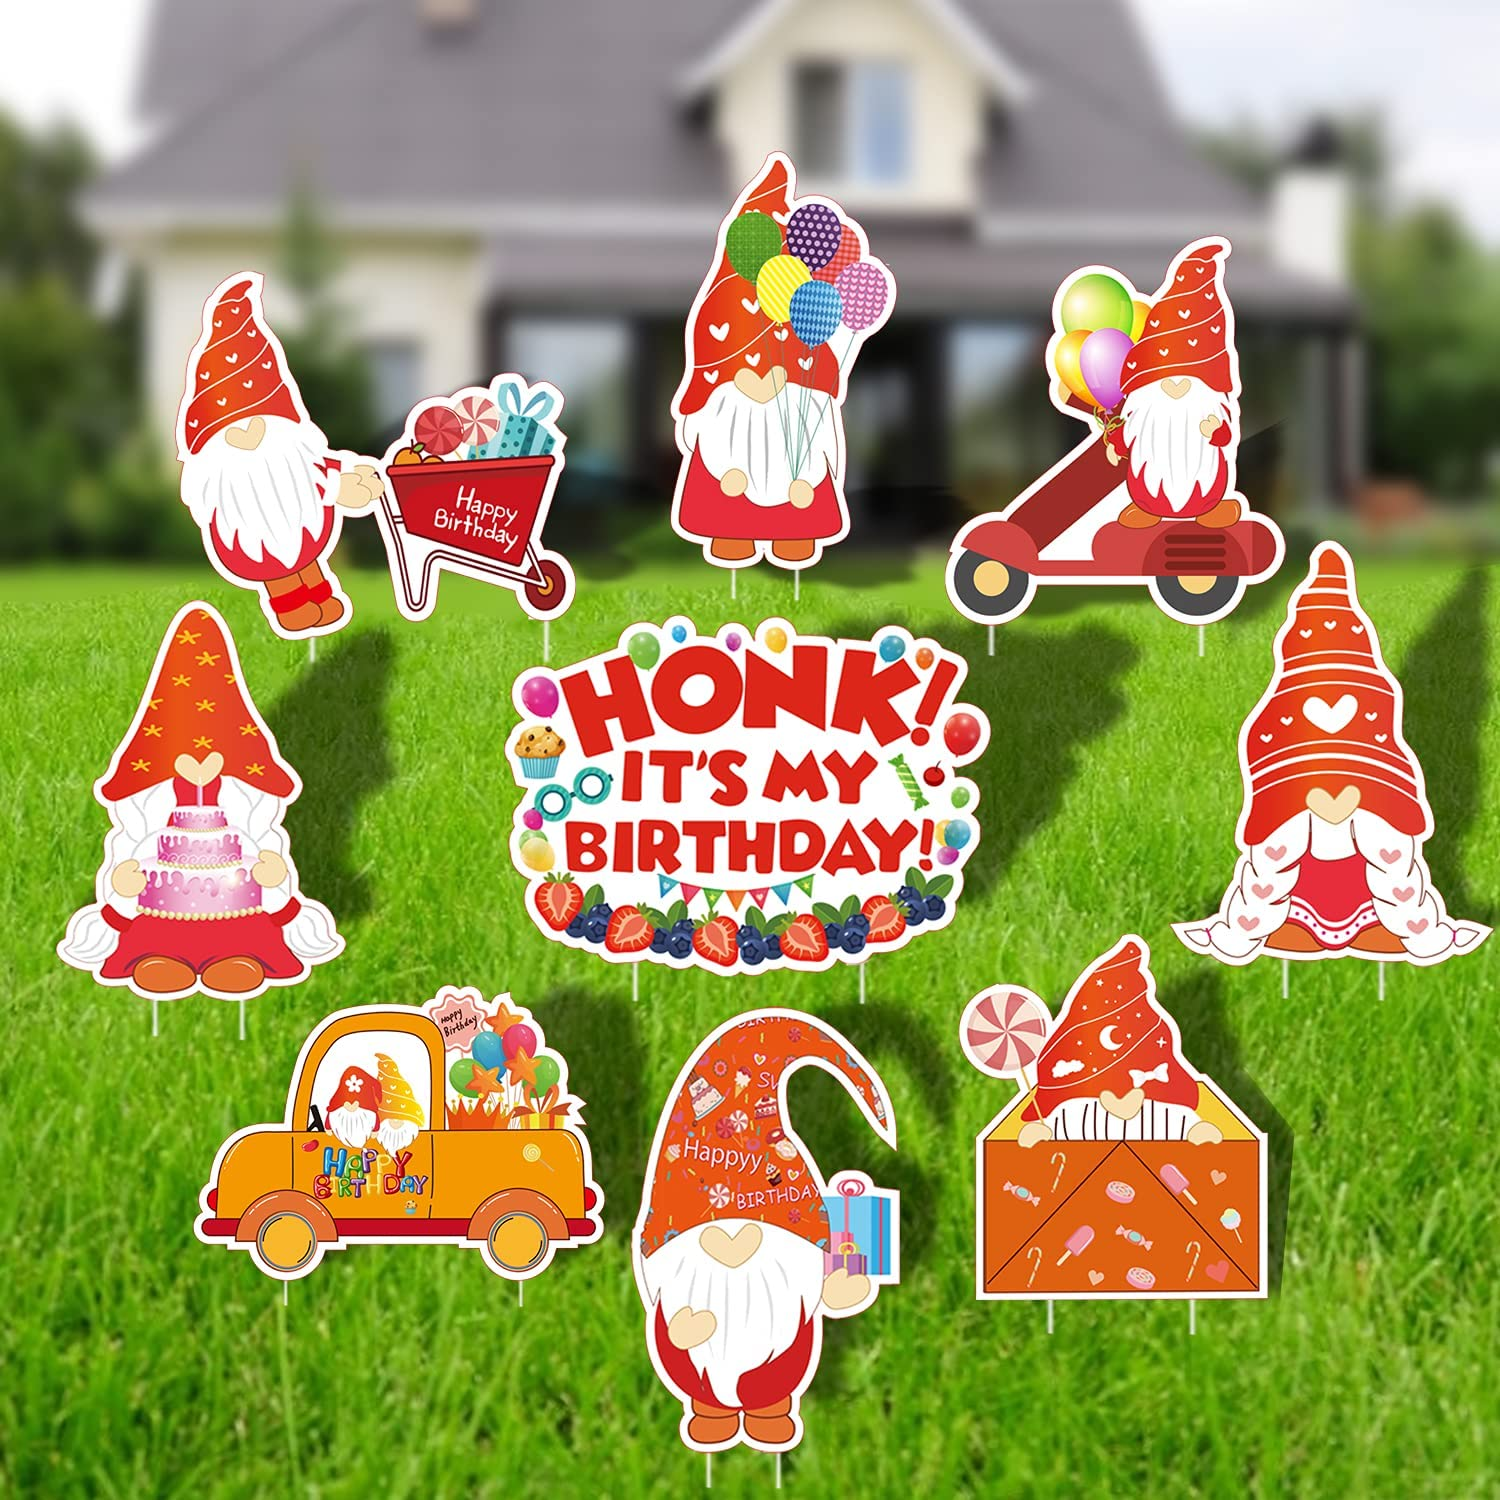 Birthday Decoration Yard Signs - 9pcs Big Size Outdoor Gnome Waterproof Lawn Sign with Stakes, Birthday Cake, Gift, Balloon, Envelope, Candy for Colorful Happy Birthday Party Garden Decor Ornaments